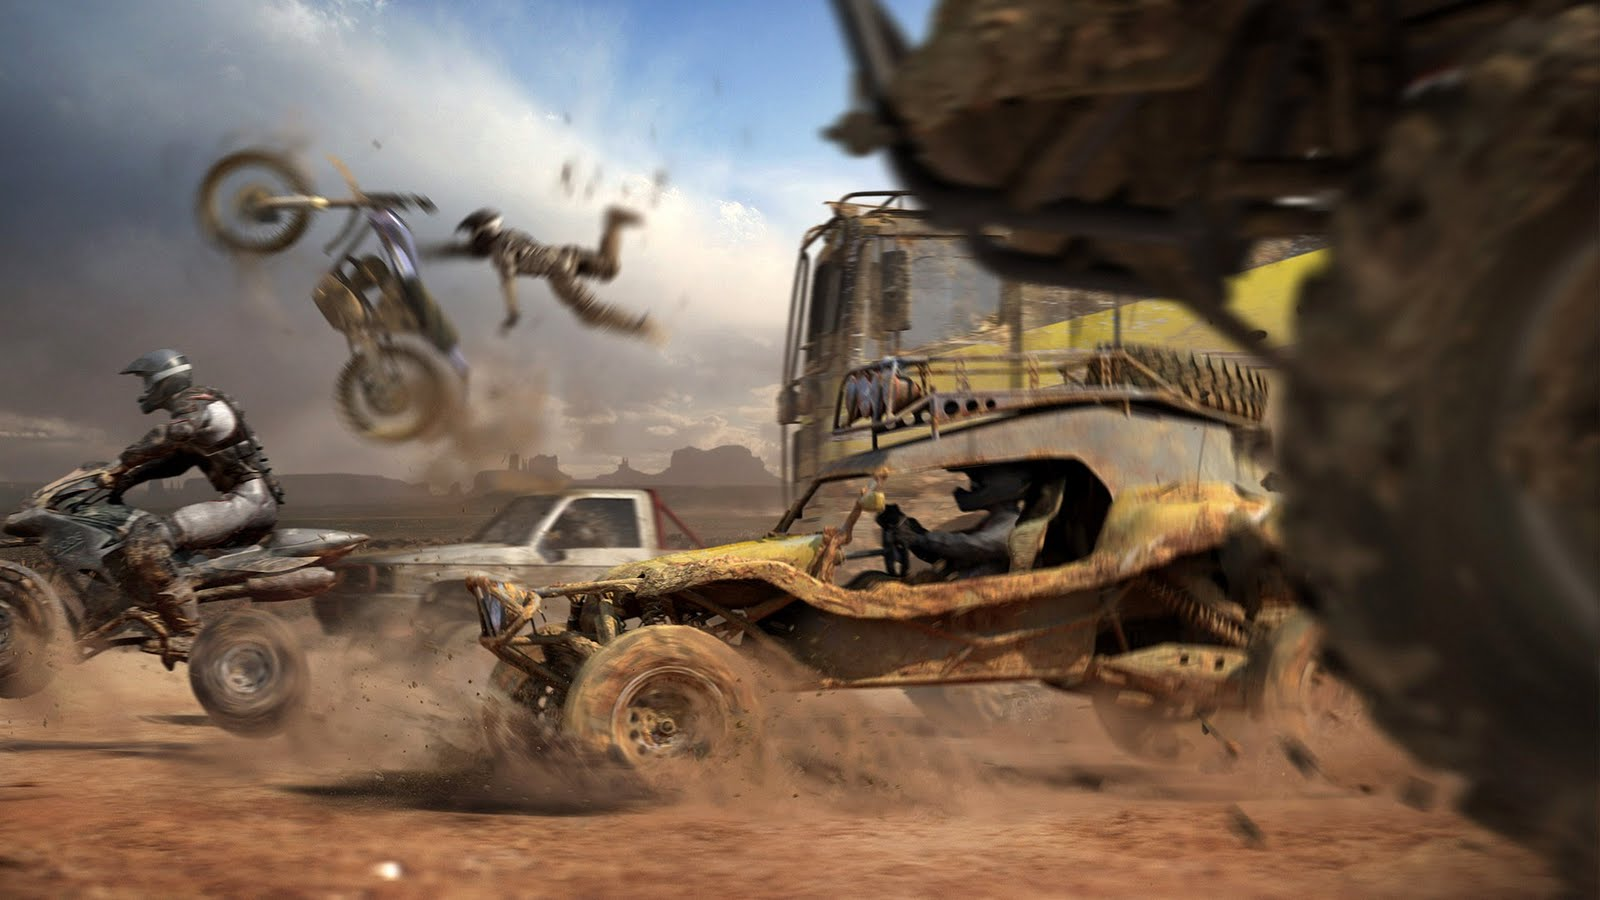 http://1.bp.blogspot.com/-LAhSd1CvCks/TafQV2oXQiI/AAAAAAAACls/Lsmz8-Cqolc/s1600/Dirt-games-cars-dirt-dust-bike-wallpaper-1920x1080.jpg